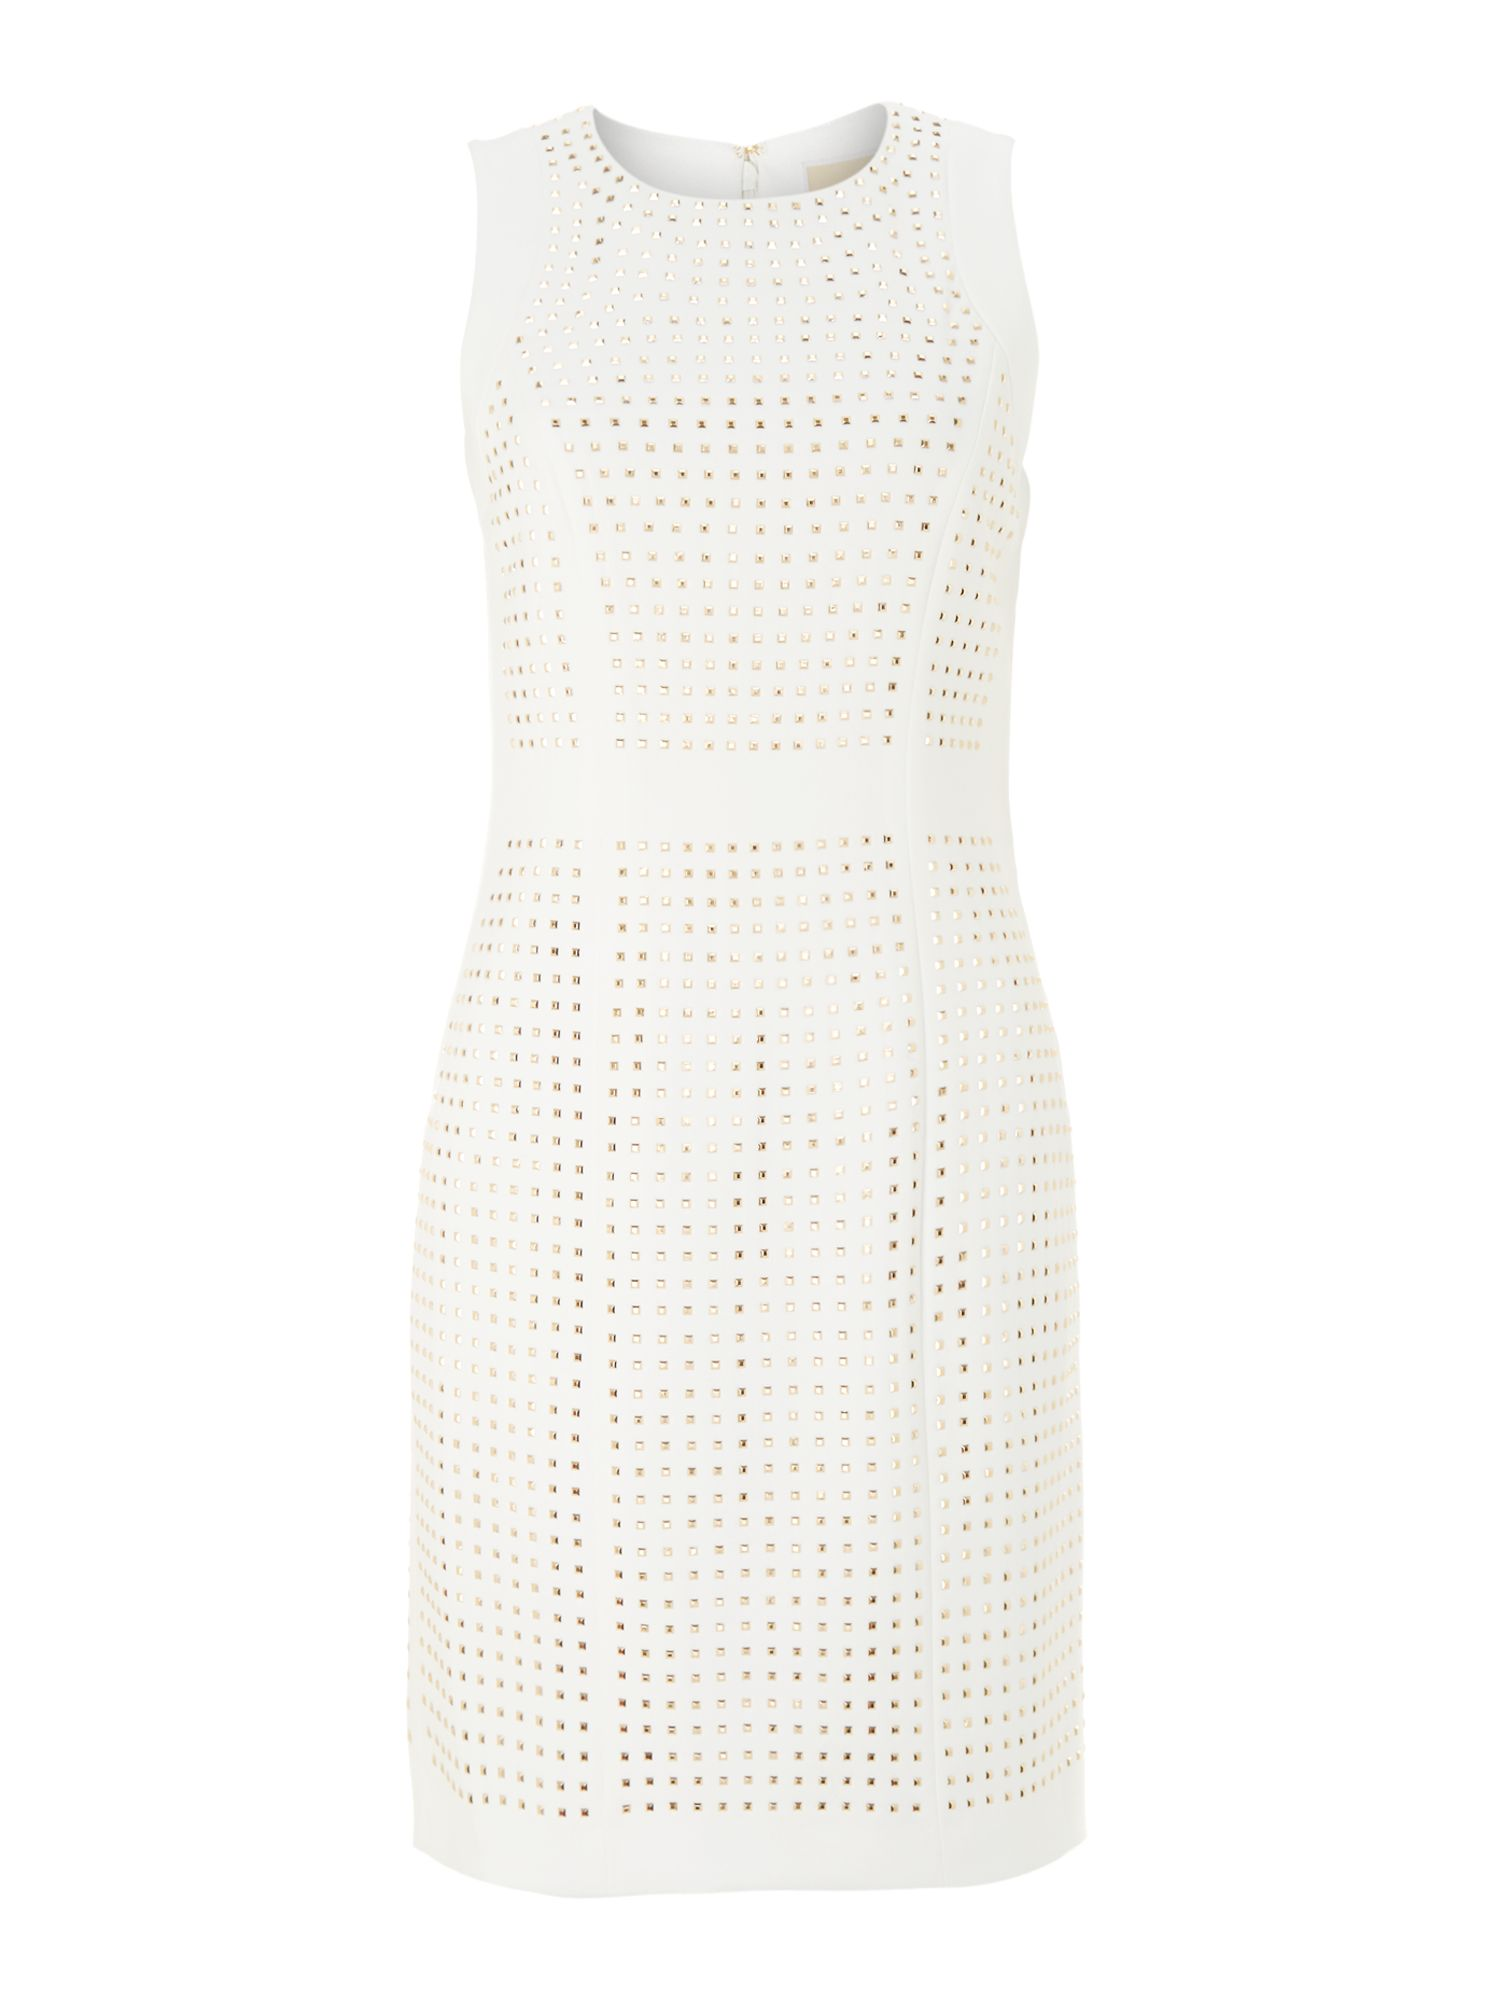 Studded sleeveless dress